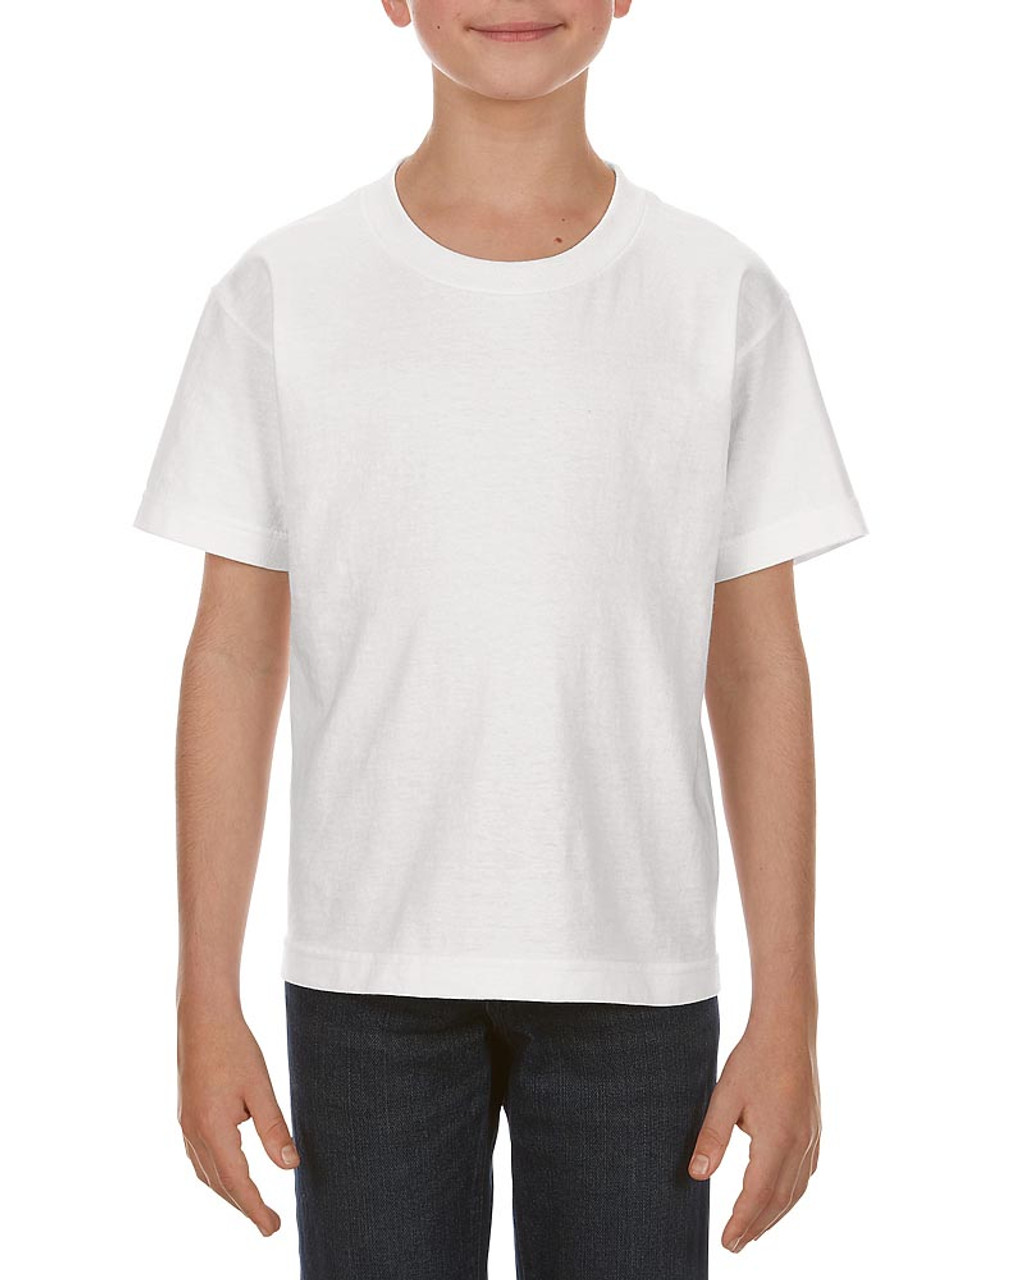 3381 Alstyle Classic Youth Tee | T-shirt.ca